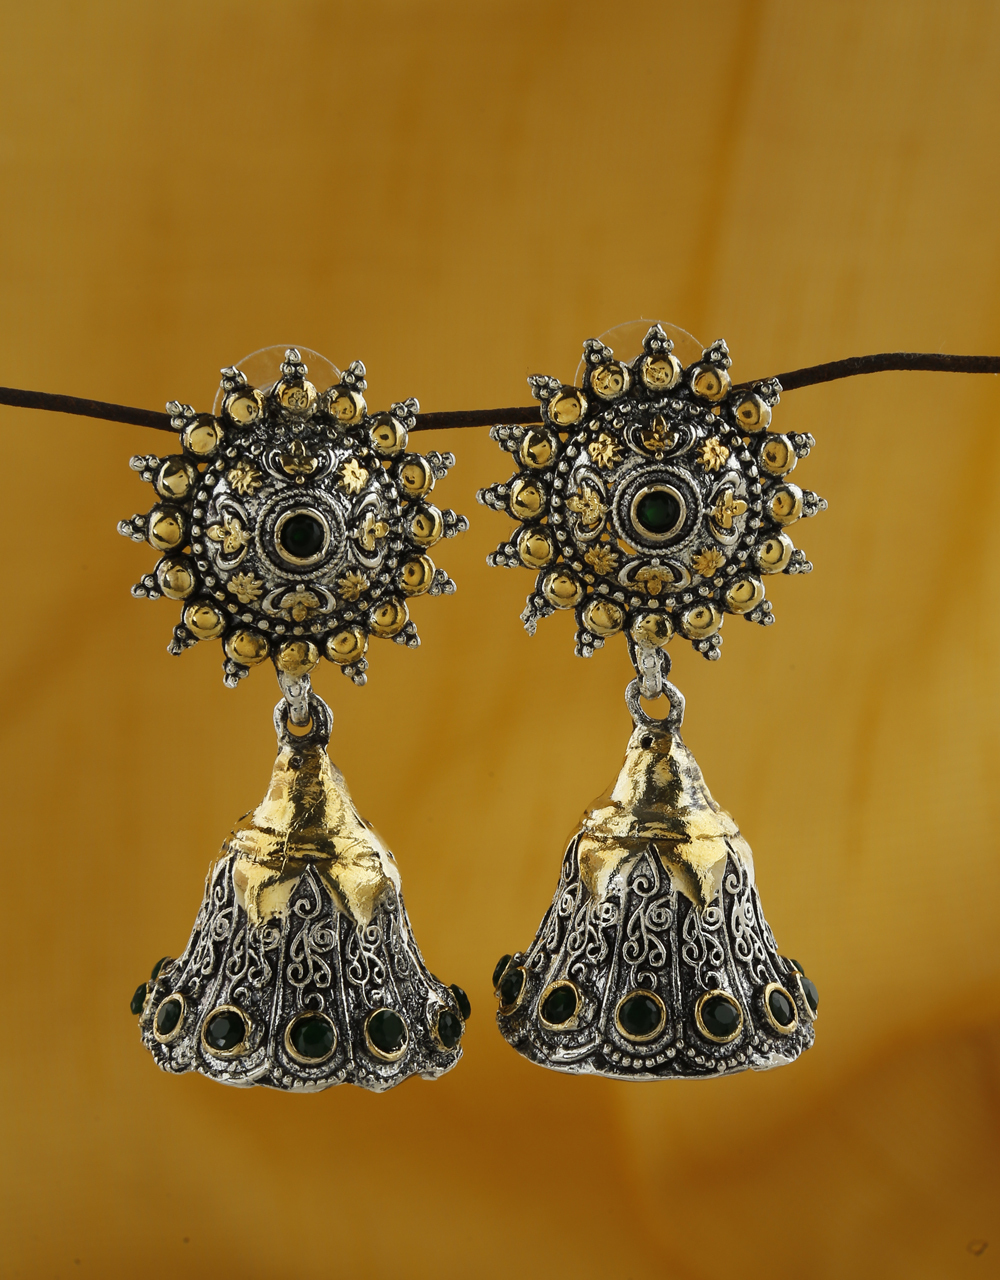 Green Colour Unique Silver and Golden Finish Oxidized Earrings for Women.